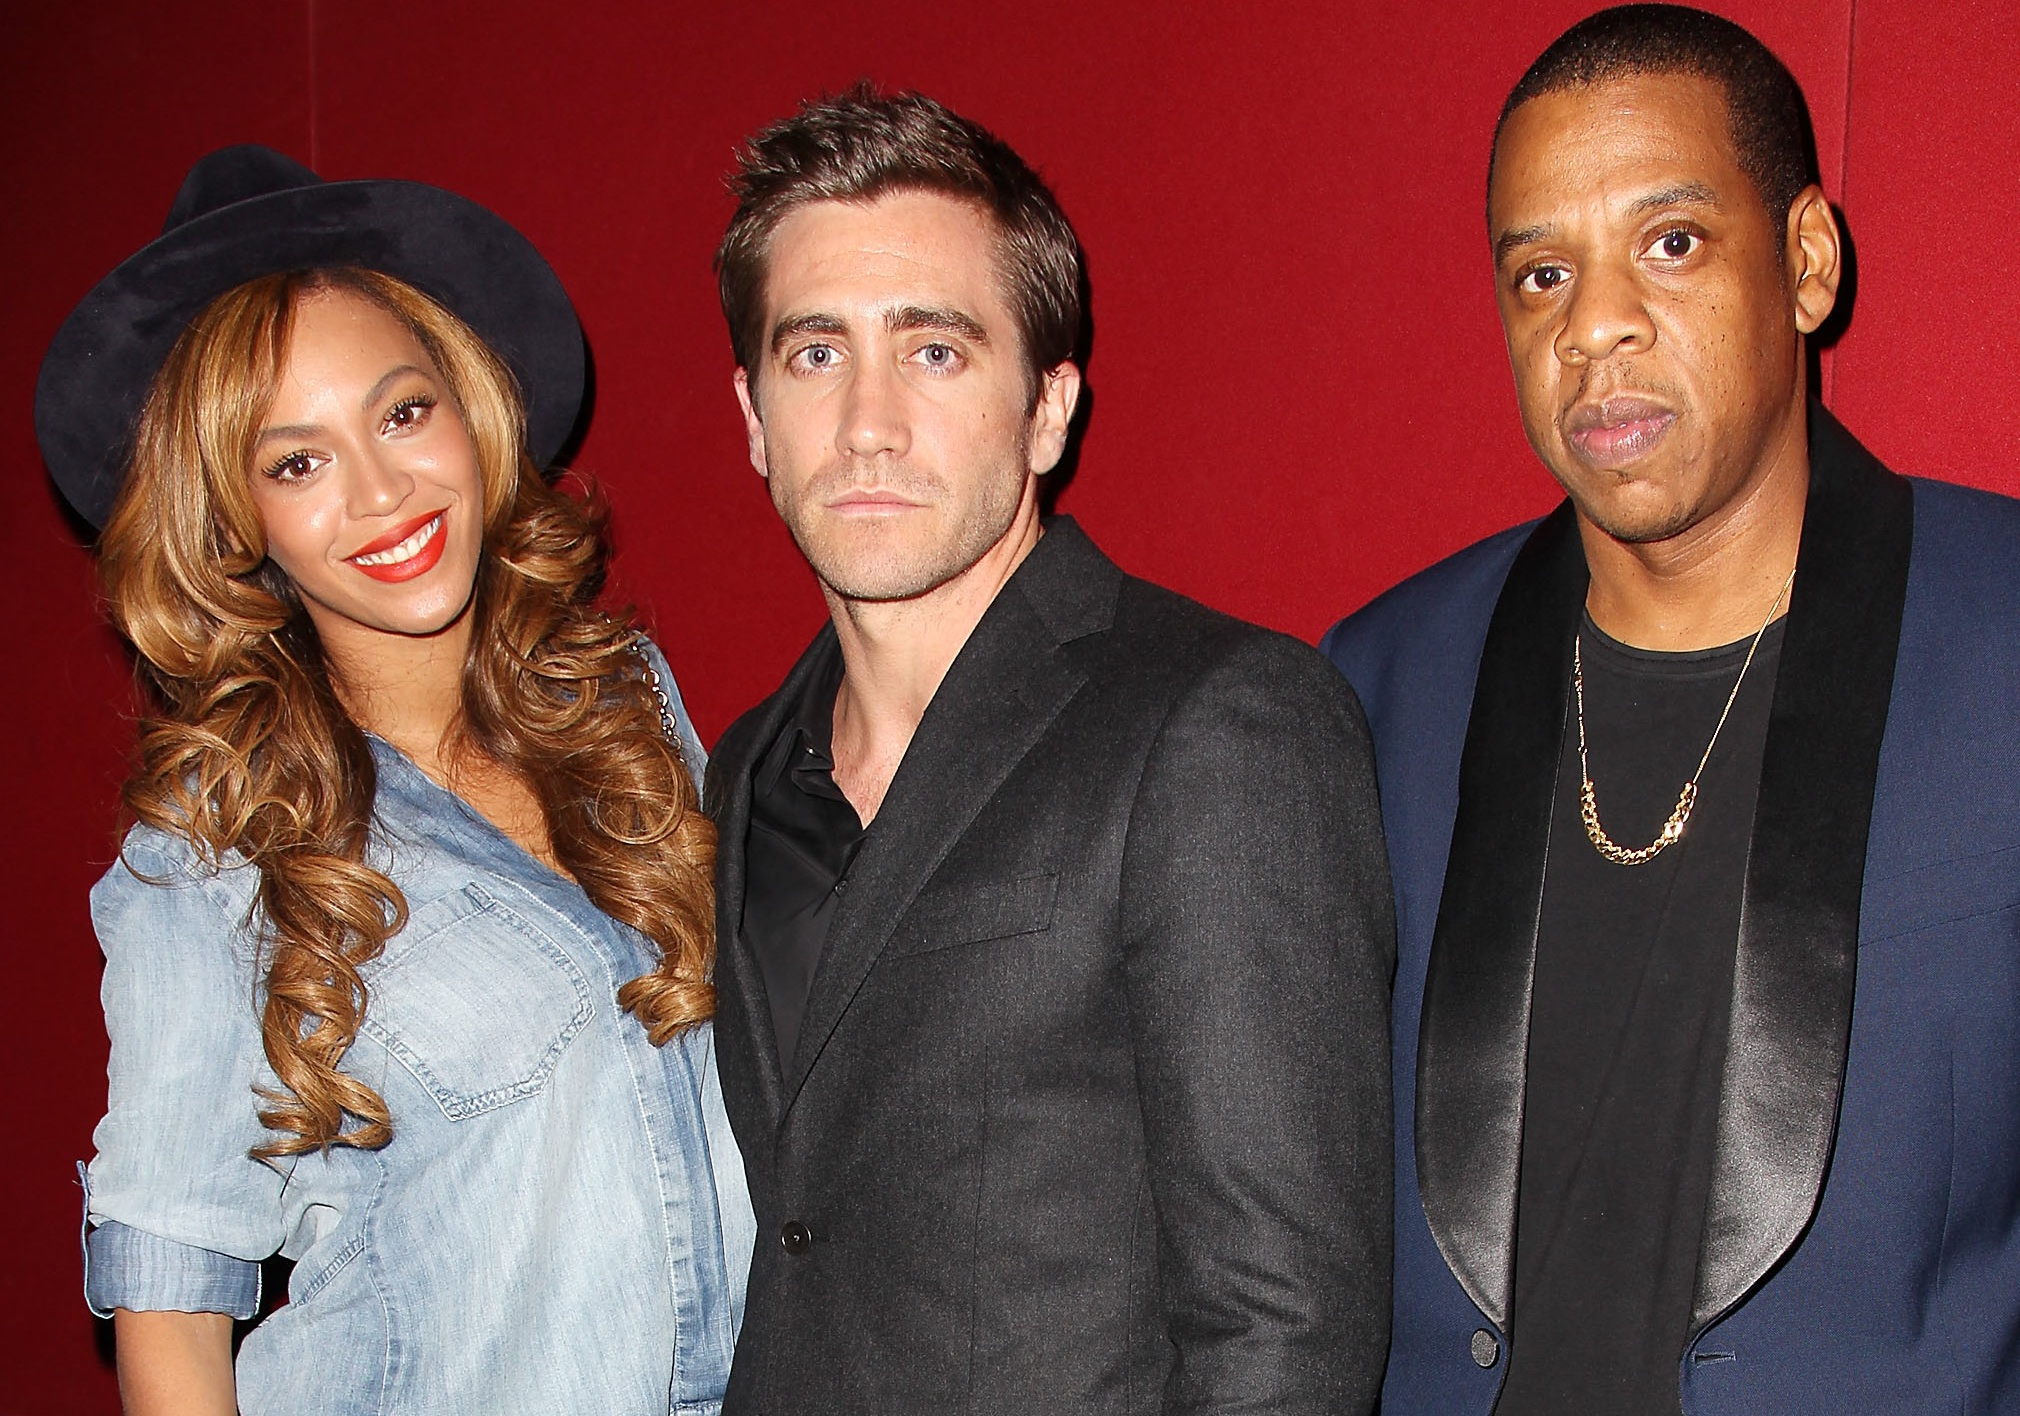 Jake Gyllenhaal, Beyonce, Jay-Z, 50 Cent Film Premiere News